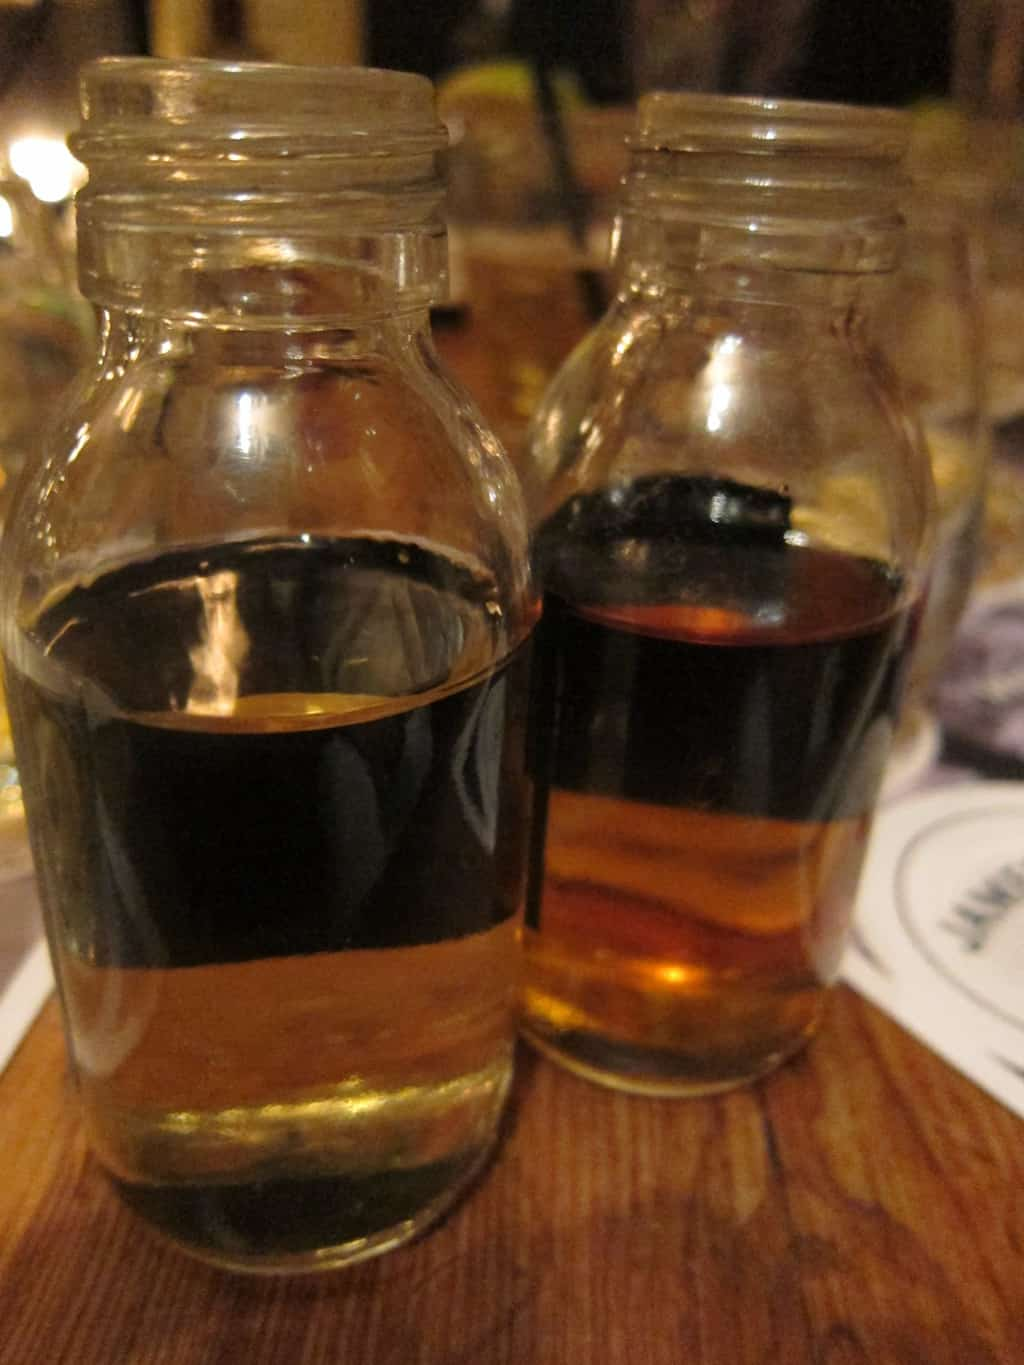 samples of spirit in sherry casks (right) and bourbon barrels (left)